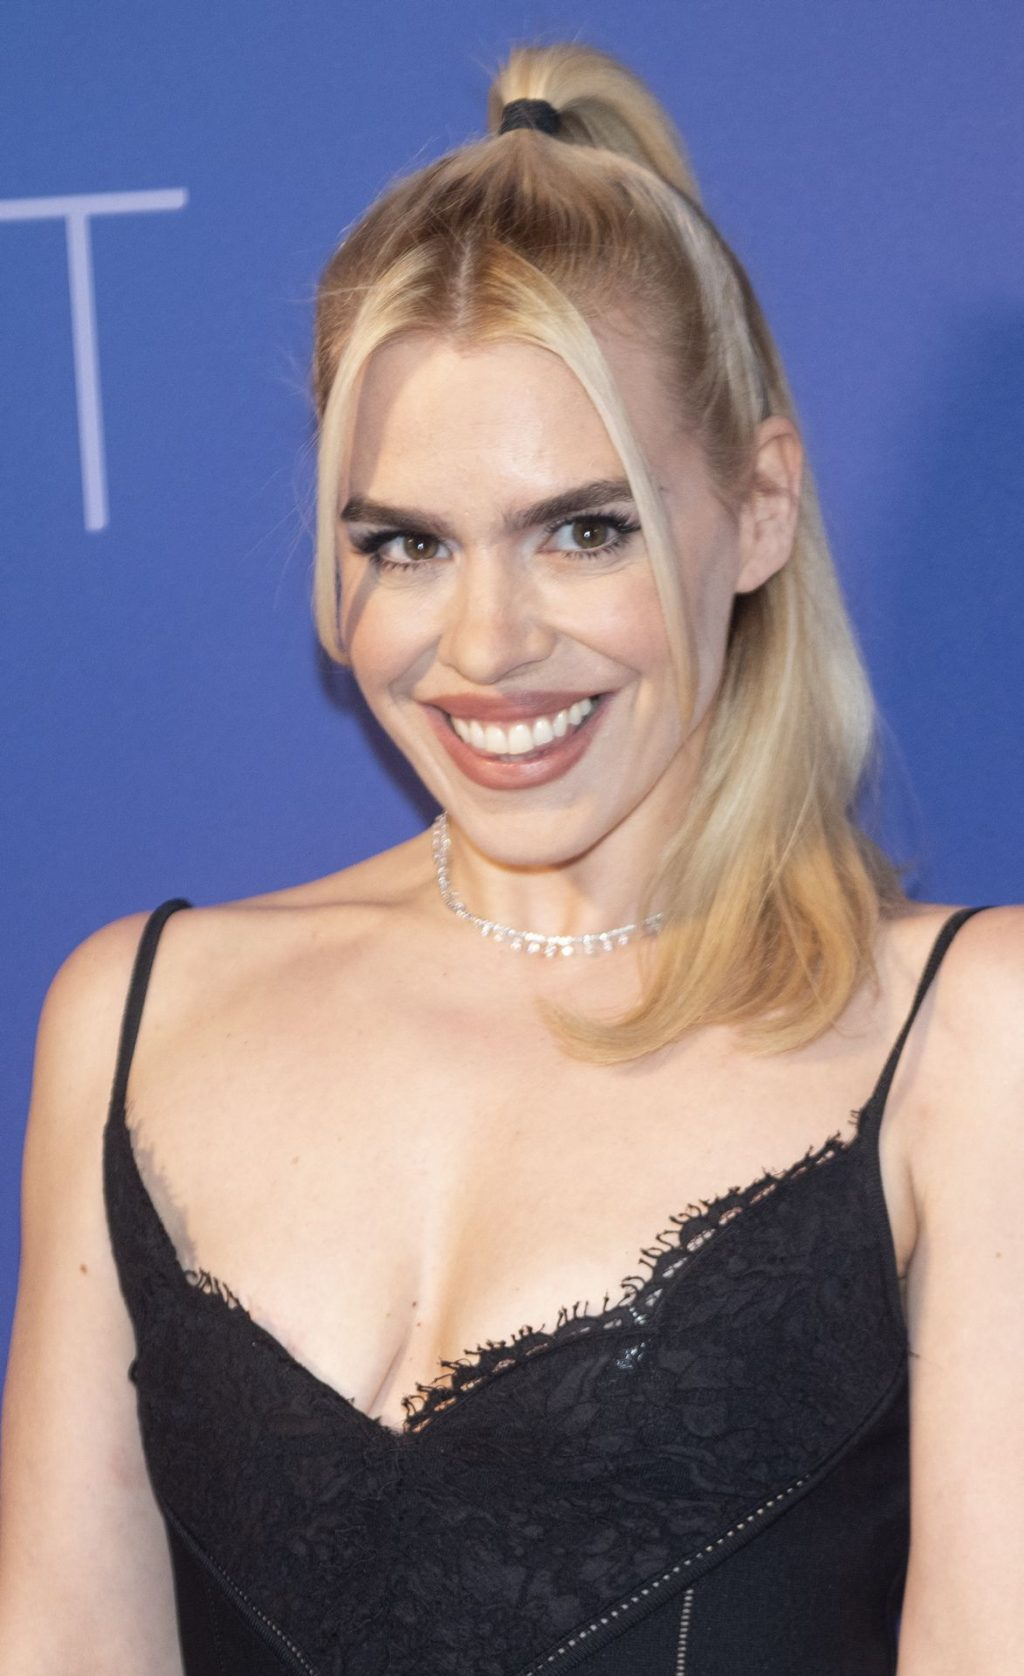 Billie Piper Sexy The Fappening Blog 62 1024x1676 - Billie Piper Smiles at the Sky Up Next Event (67 Photos)